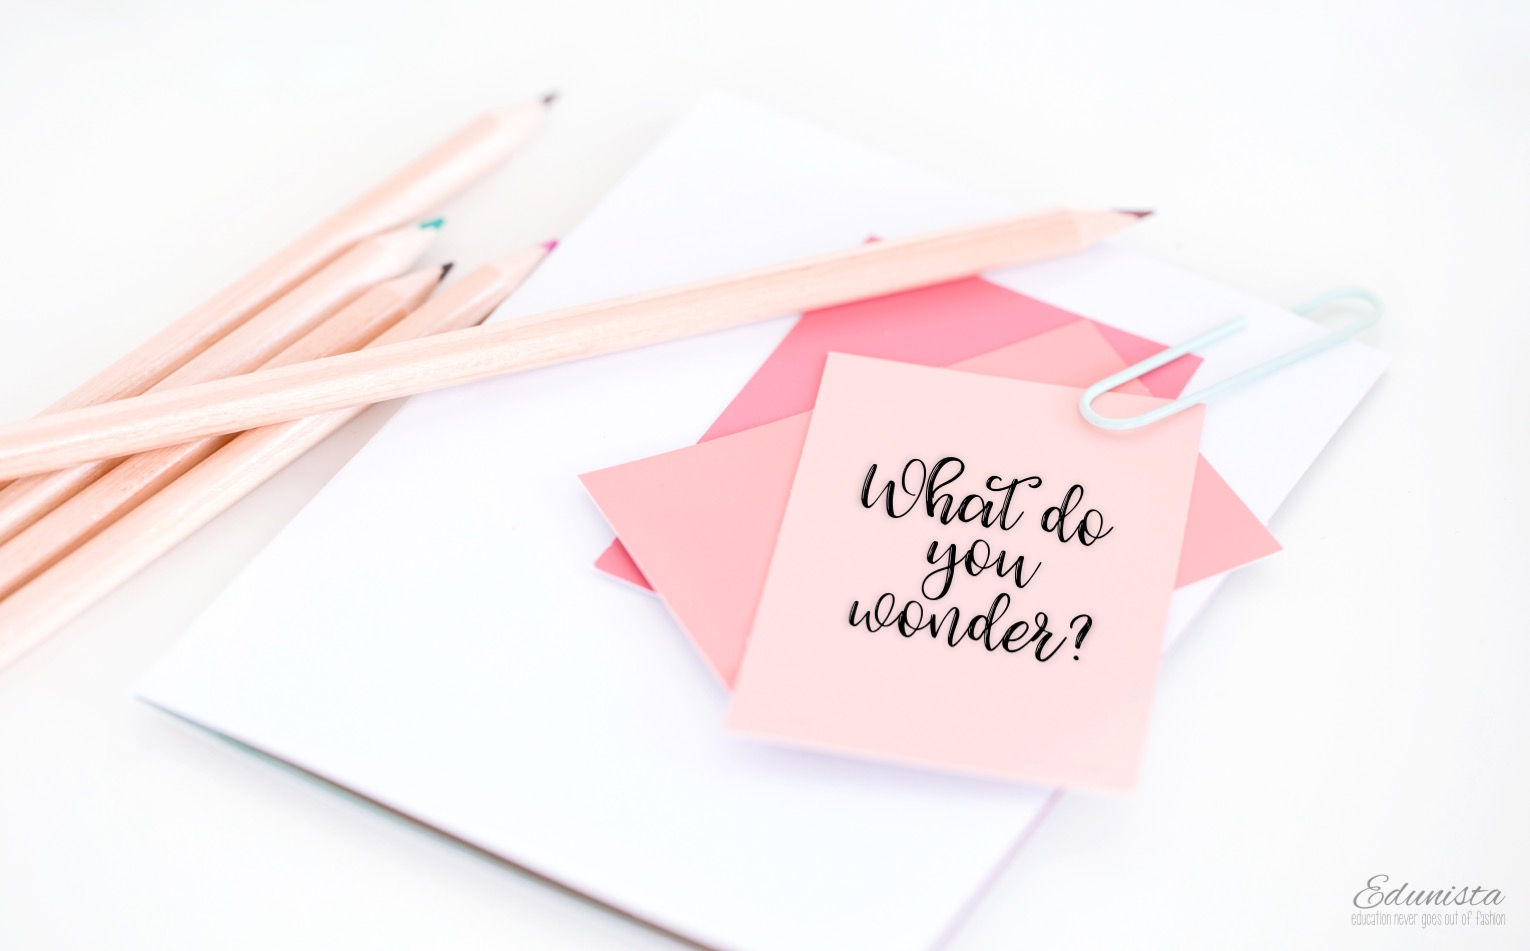 Wonderopolis is a site we discovered and have to share! Why? Because it's got the answers to all our questions - even the ones we didn't know we have yet!